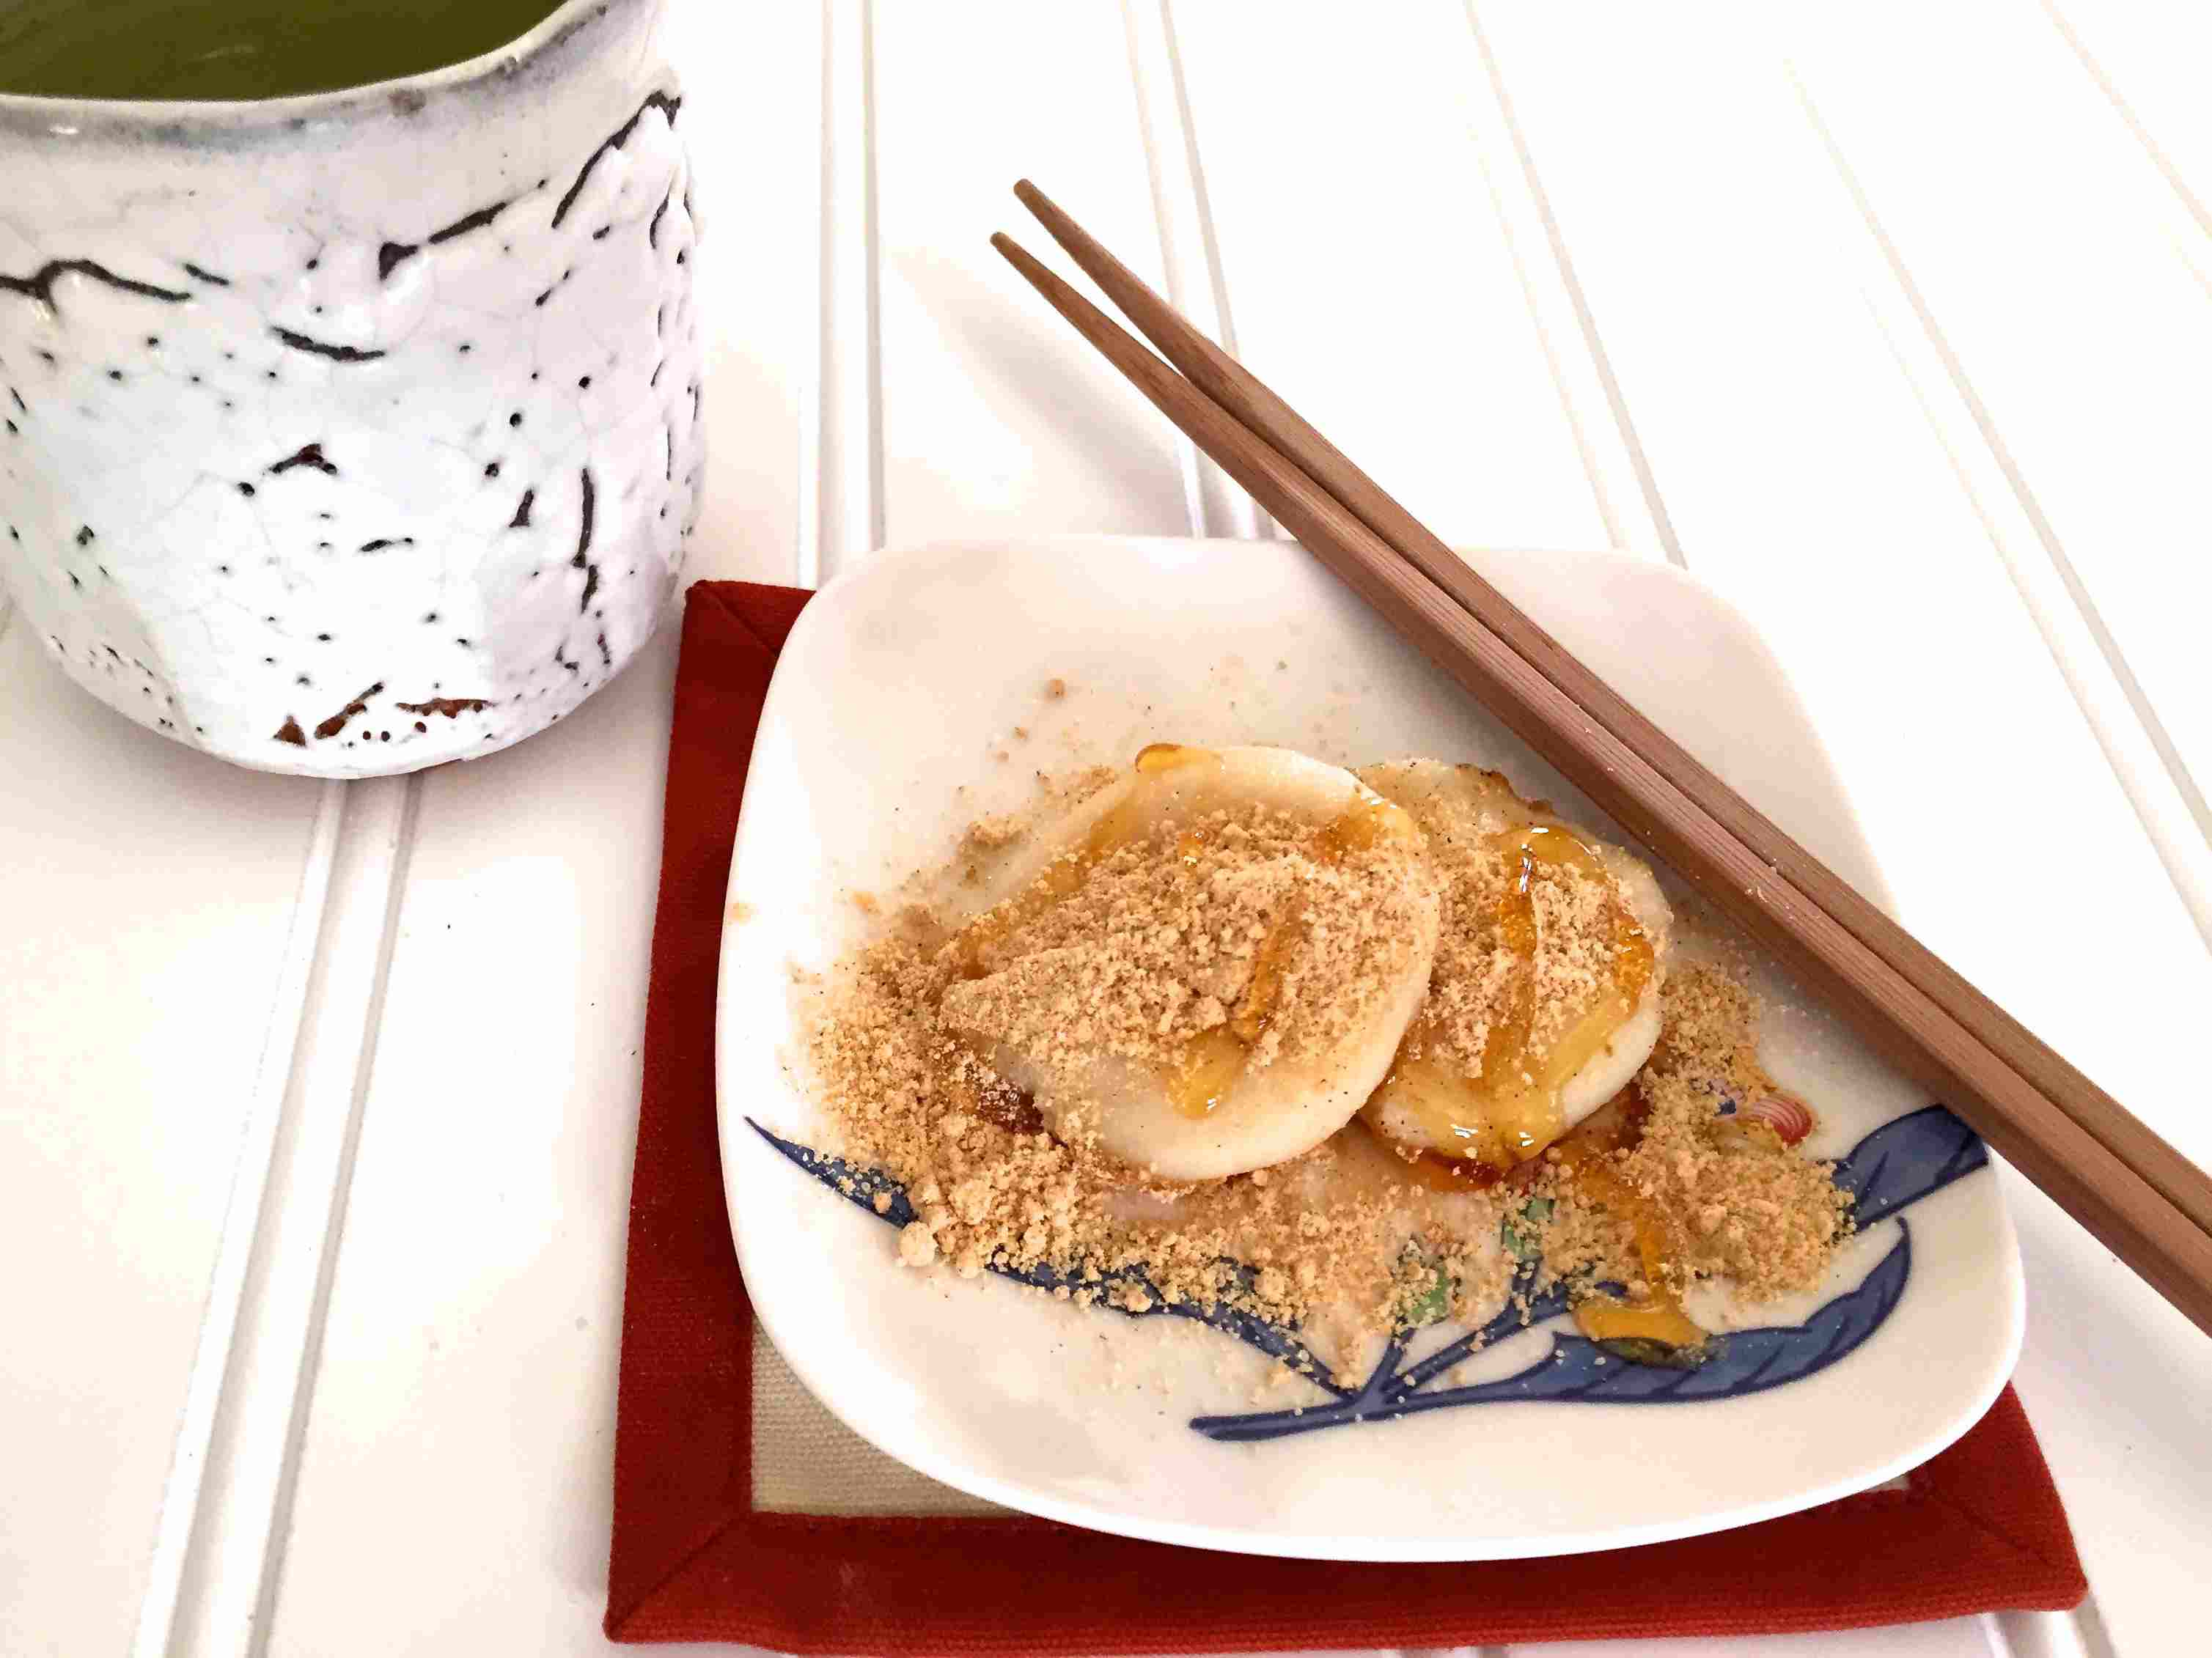 Tofu mochi with honey drizzle